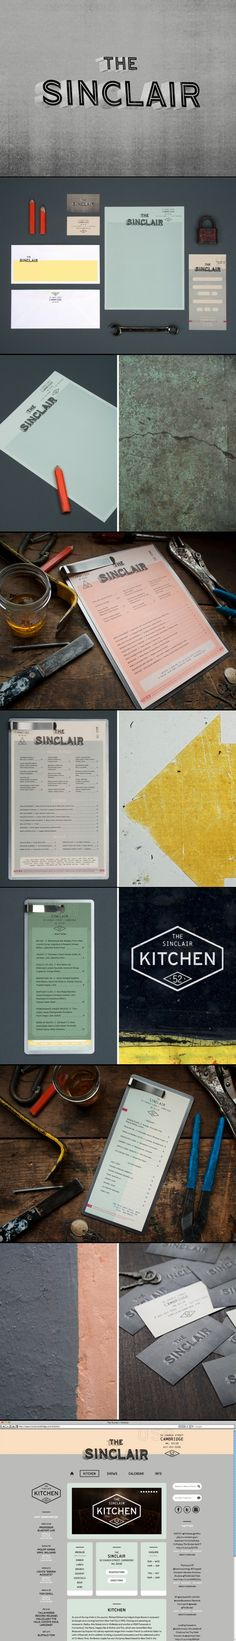 #sinclair #kitchen #branding